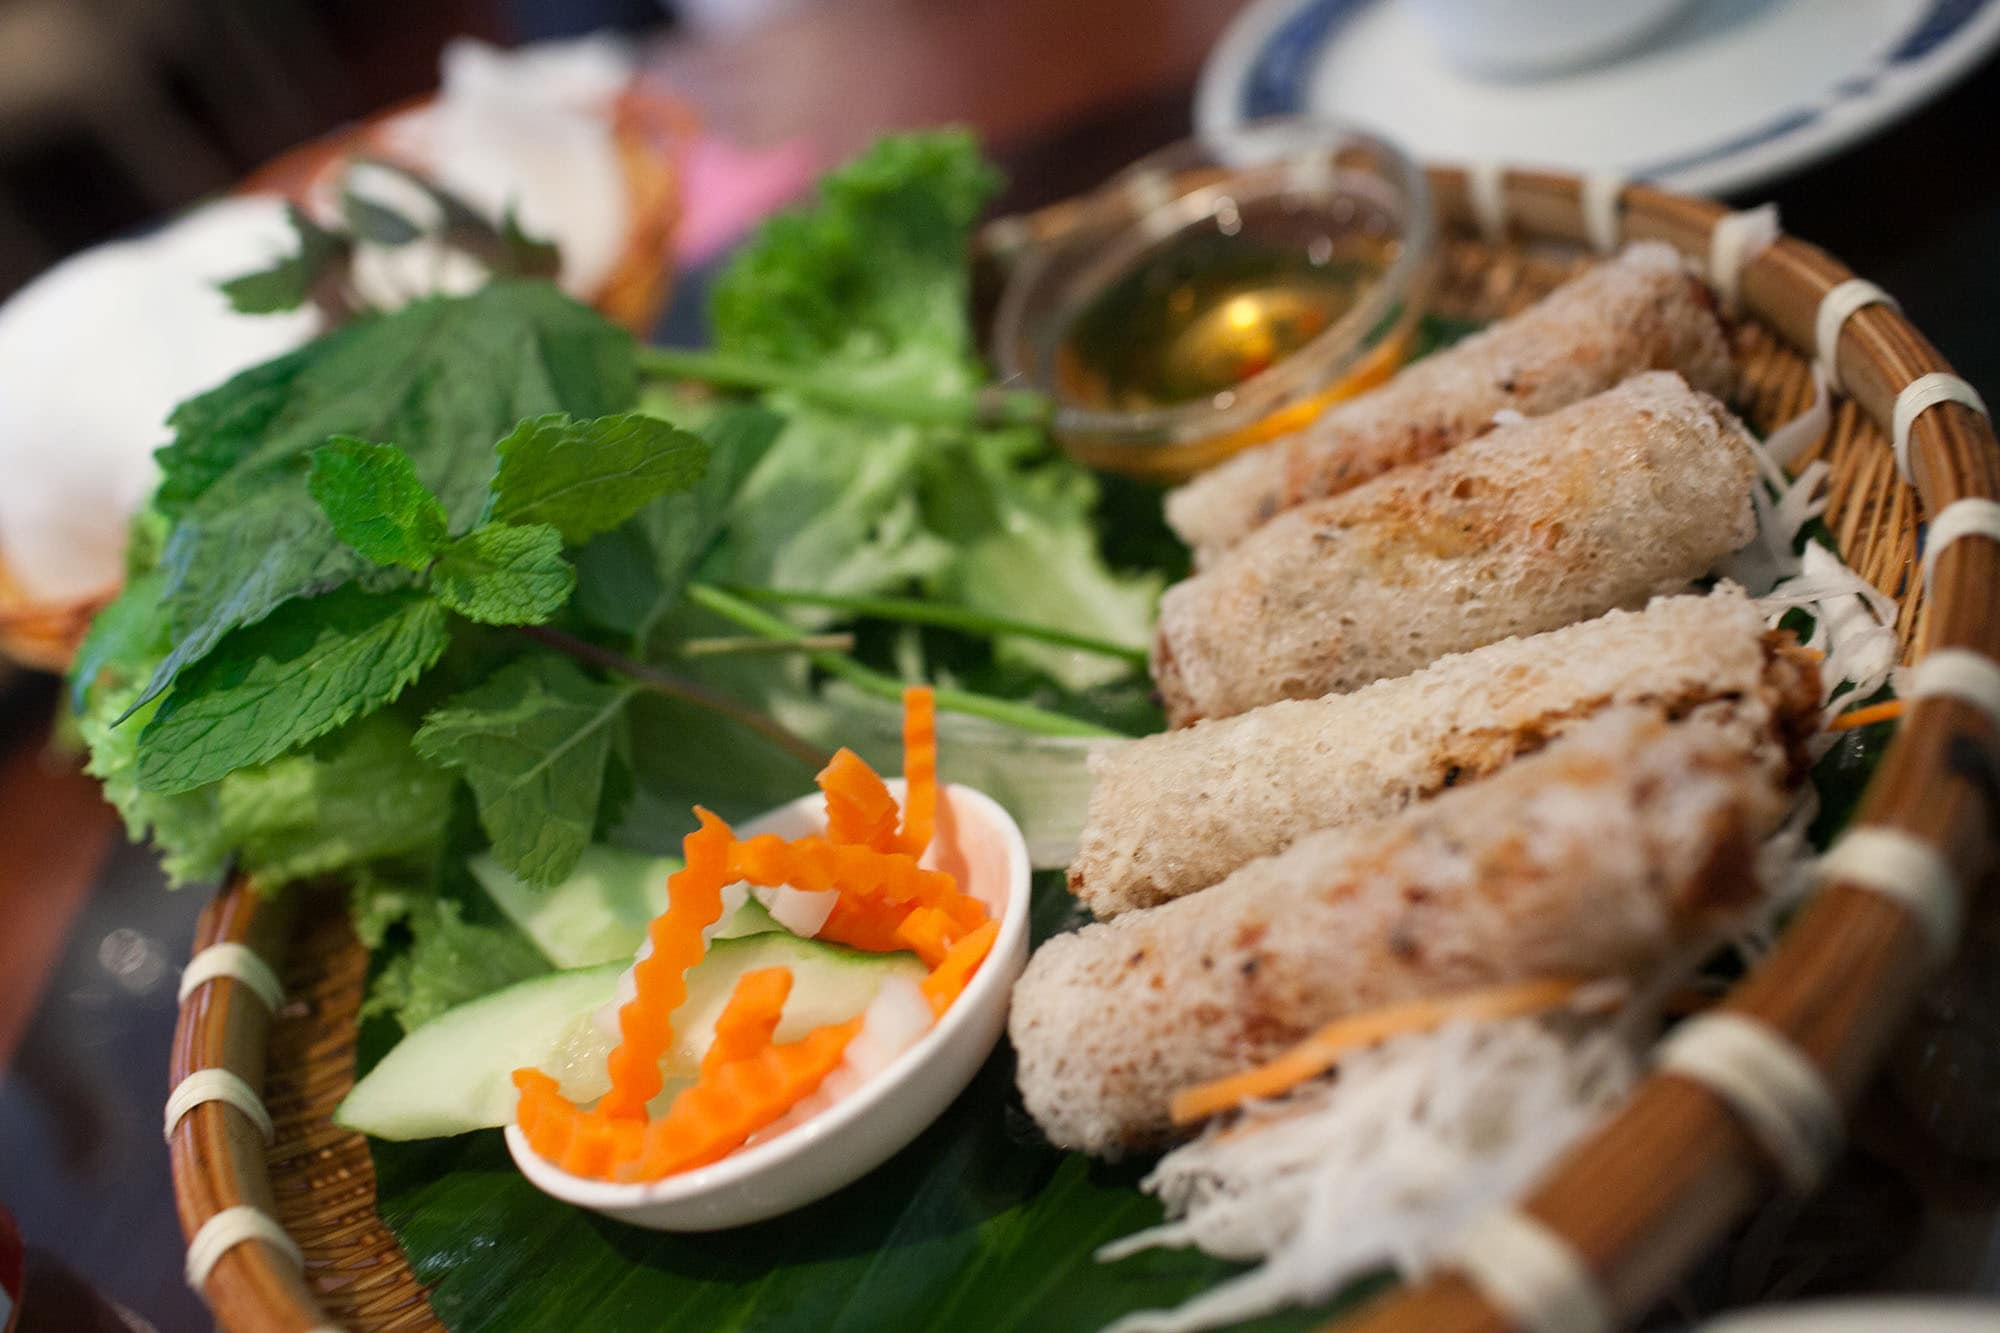 Spring Rolls at Mien Tay in London, England